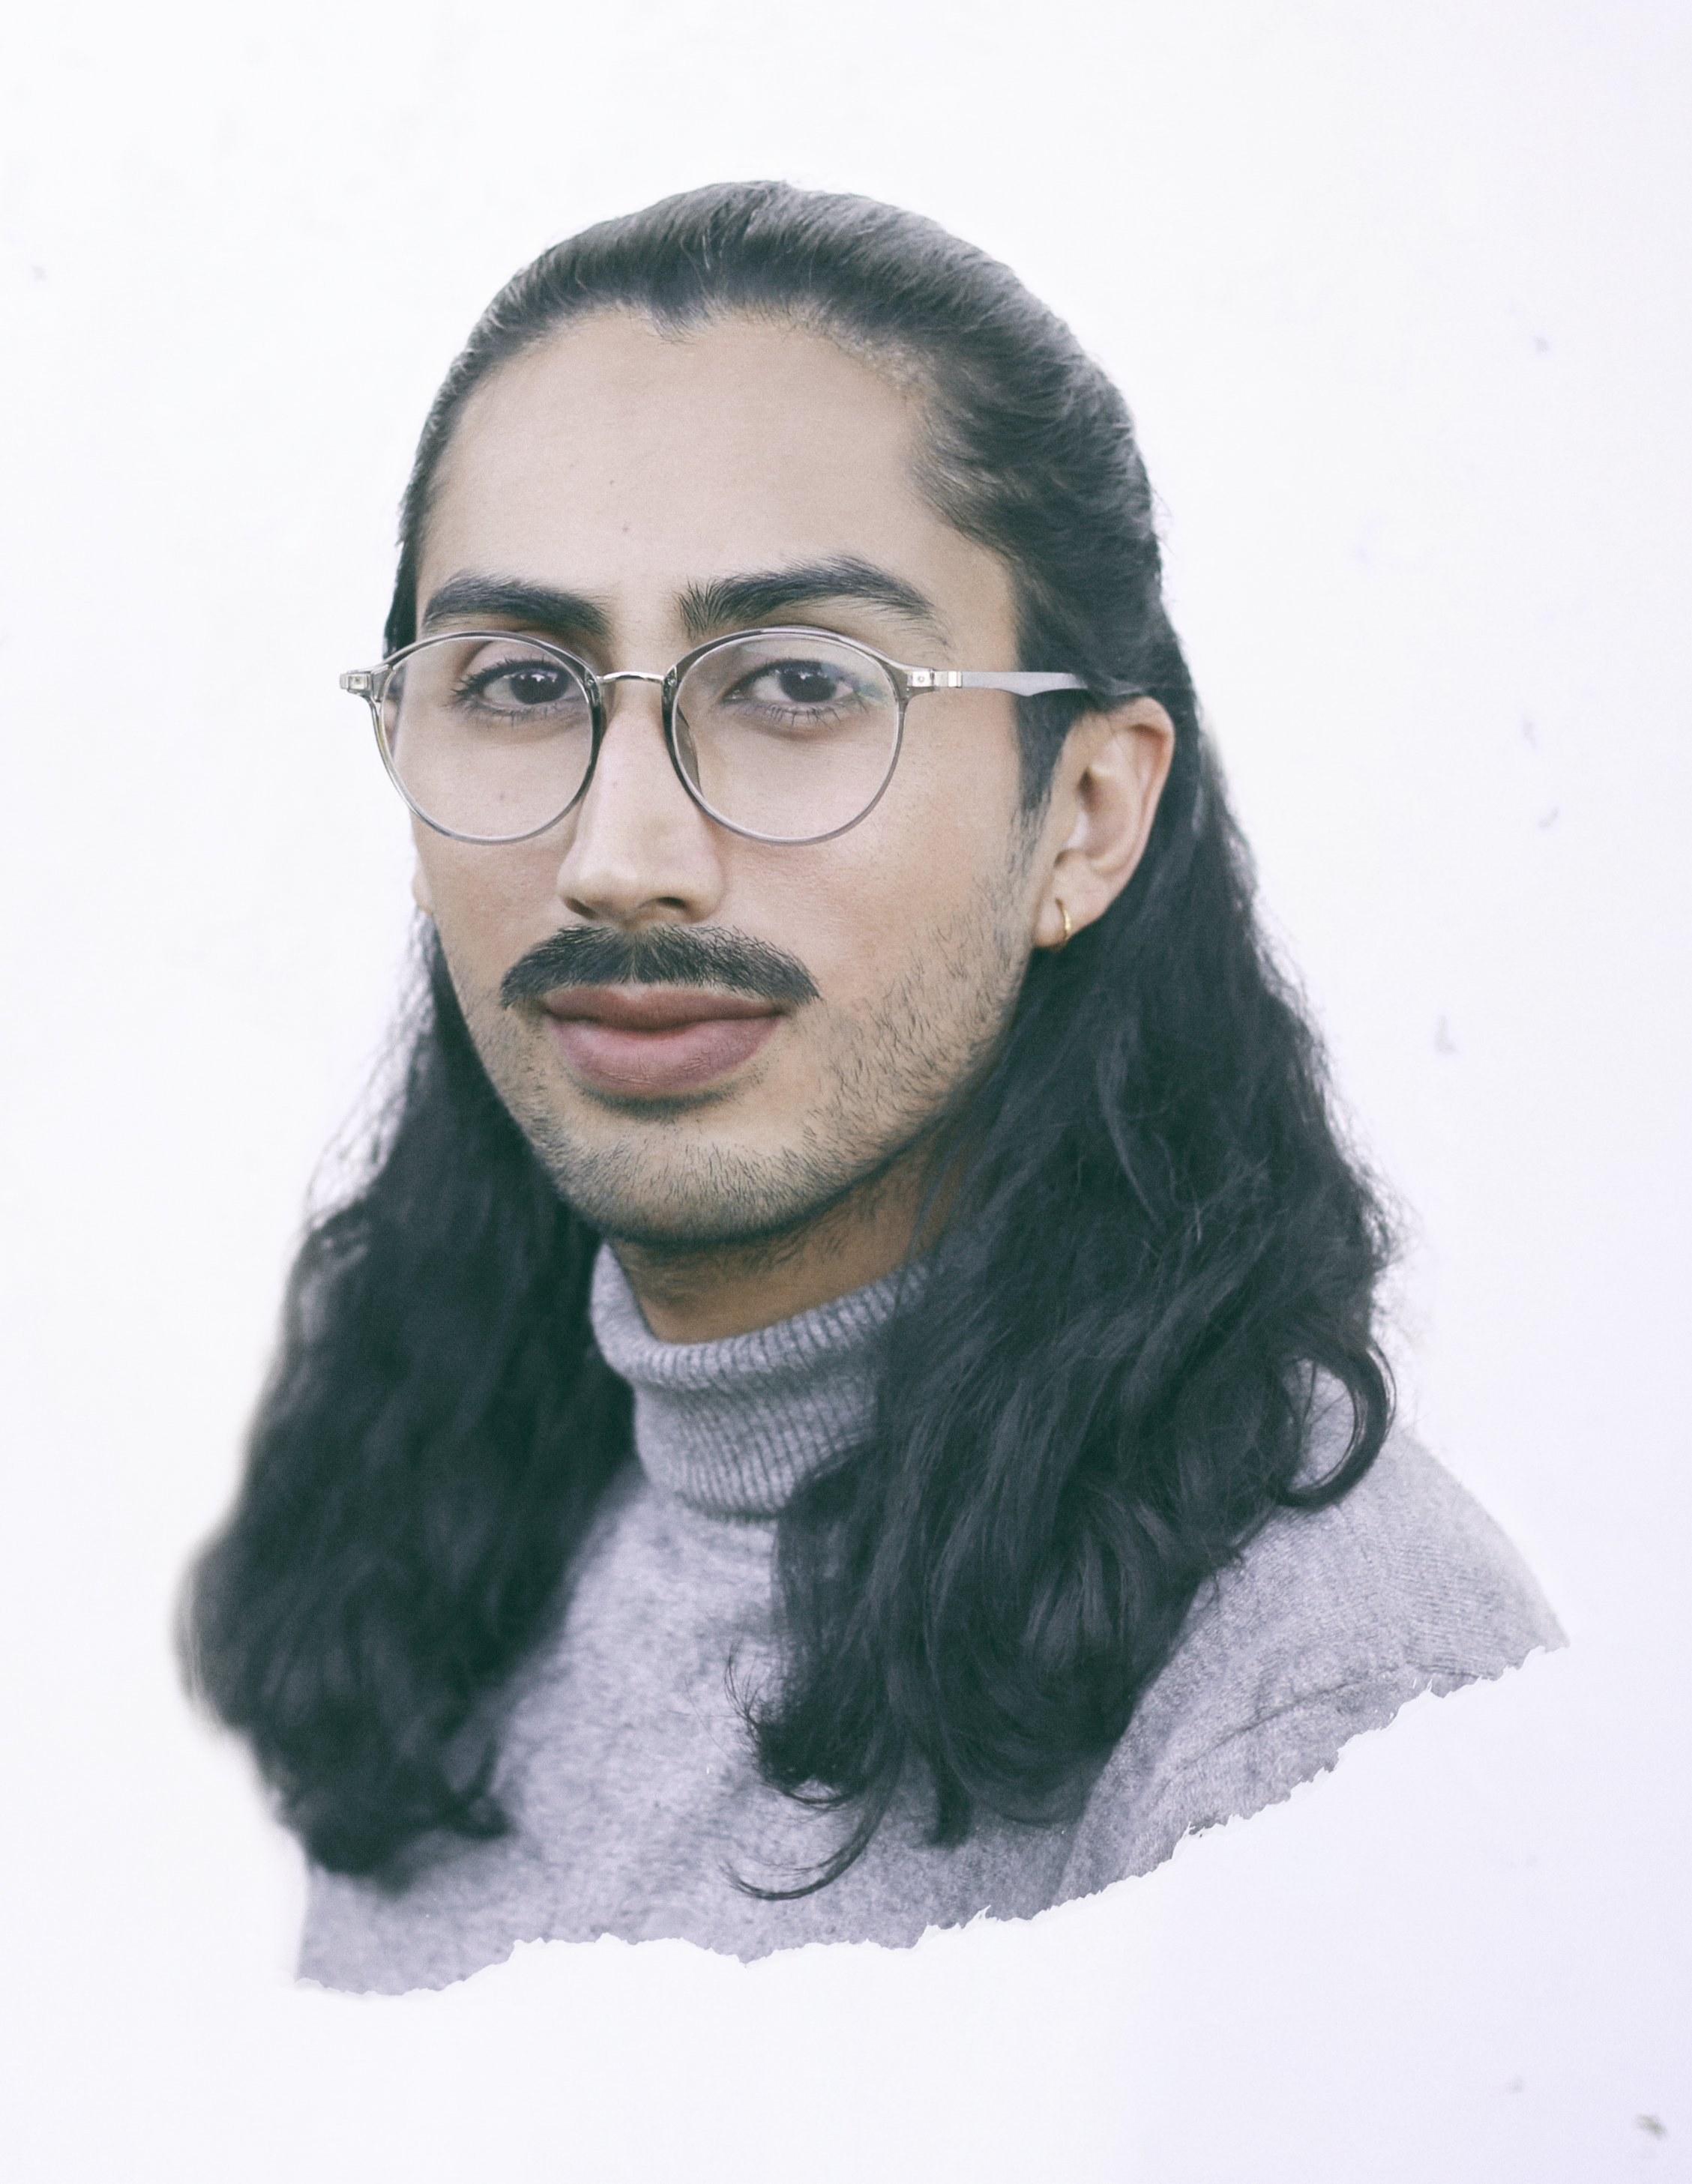 man with glasses and long brown hair